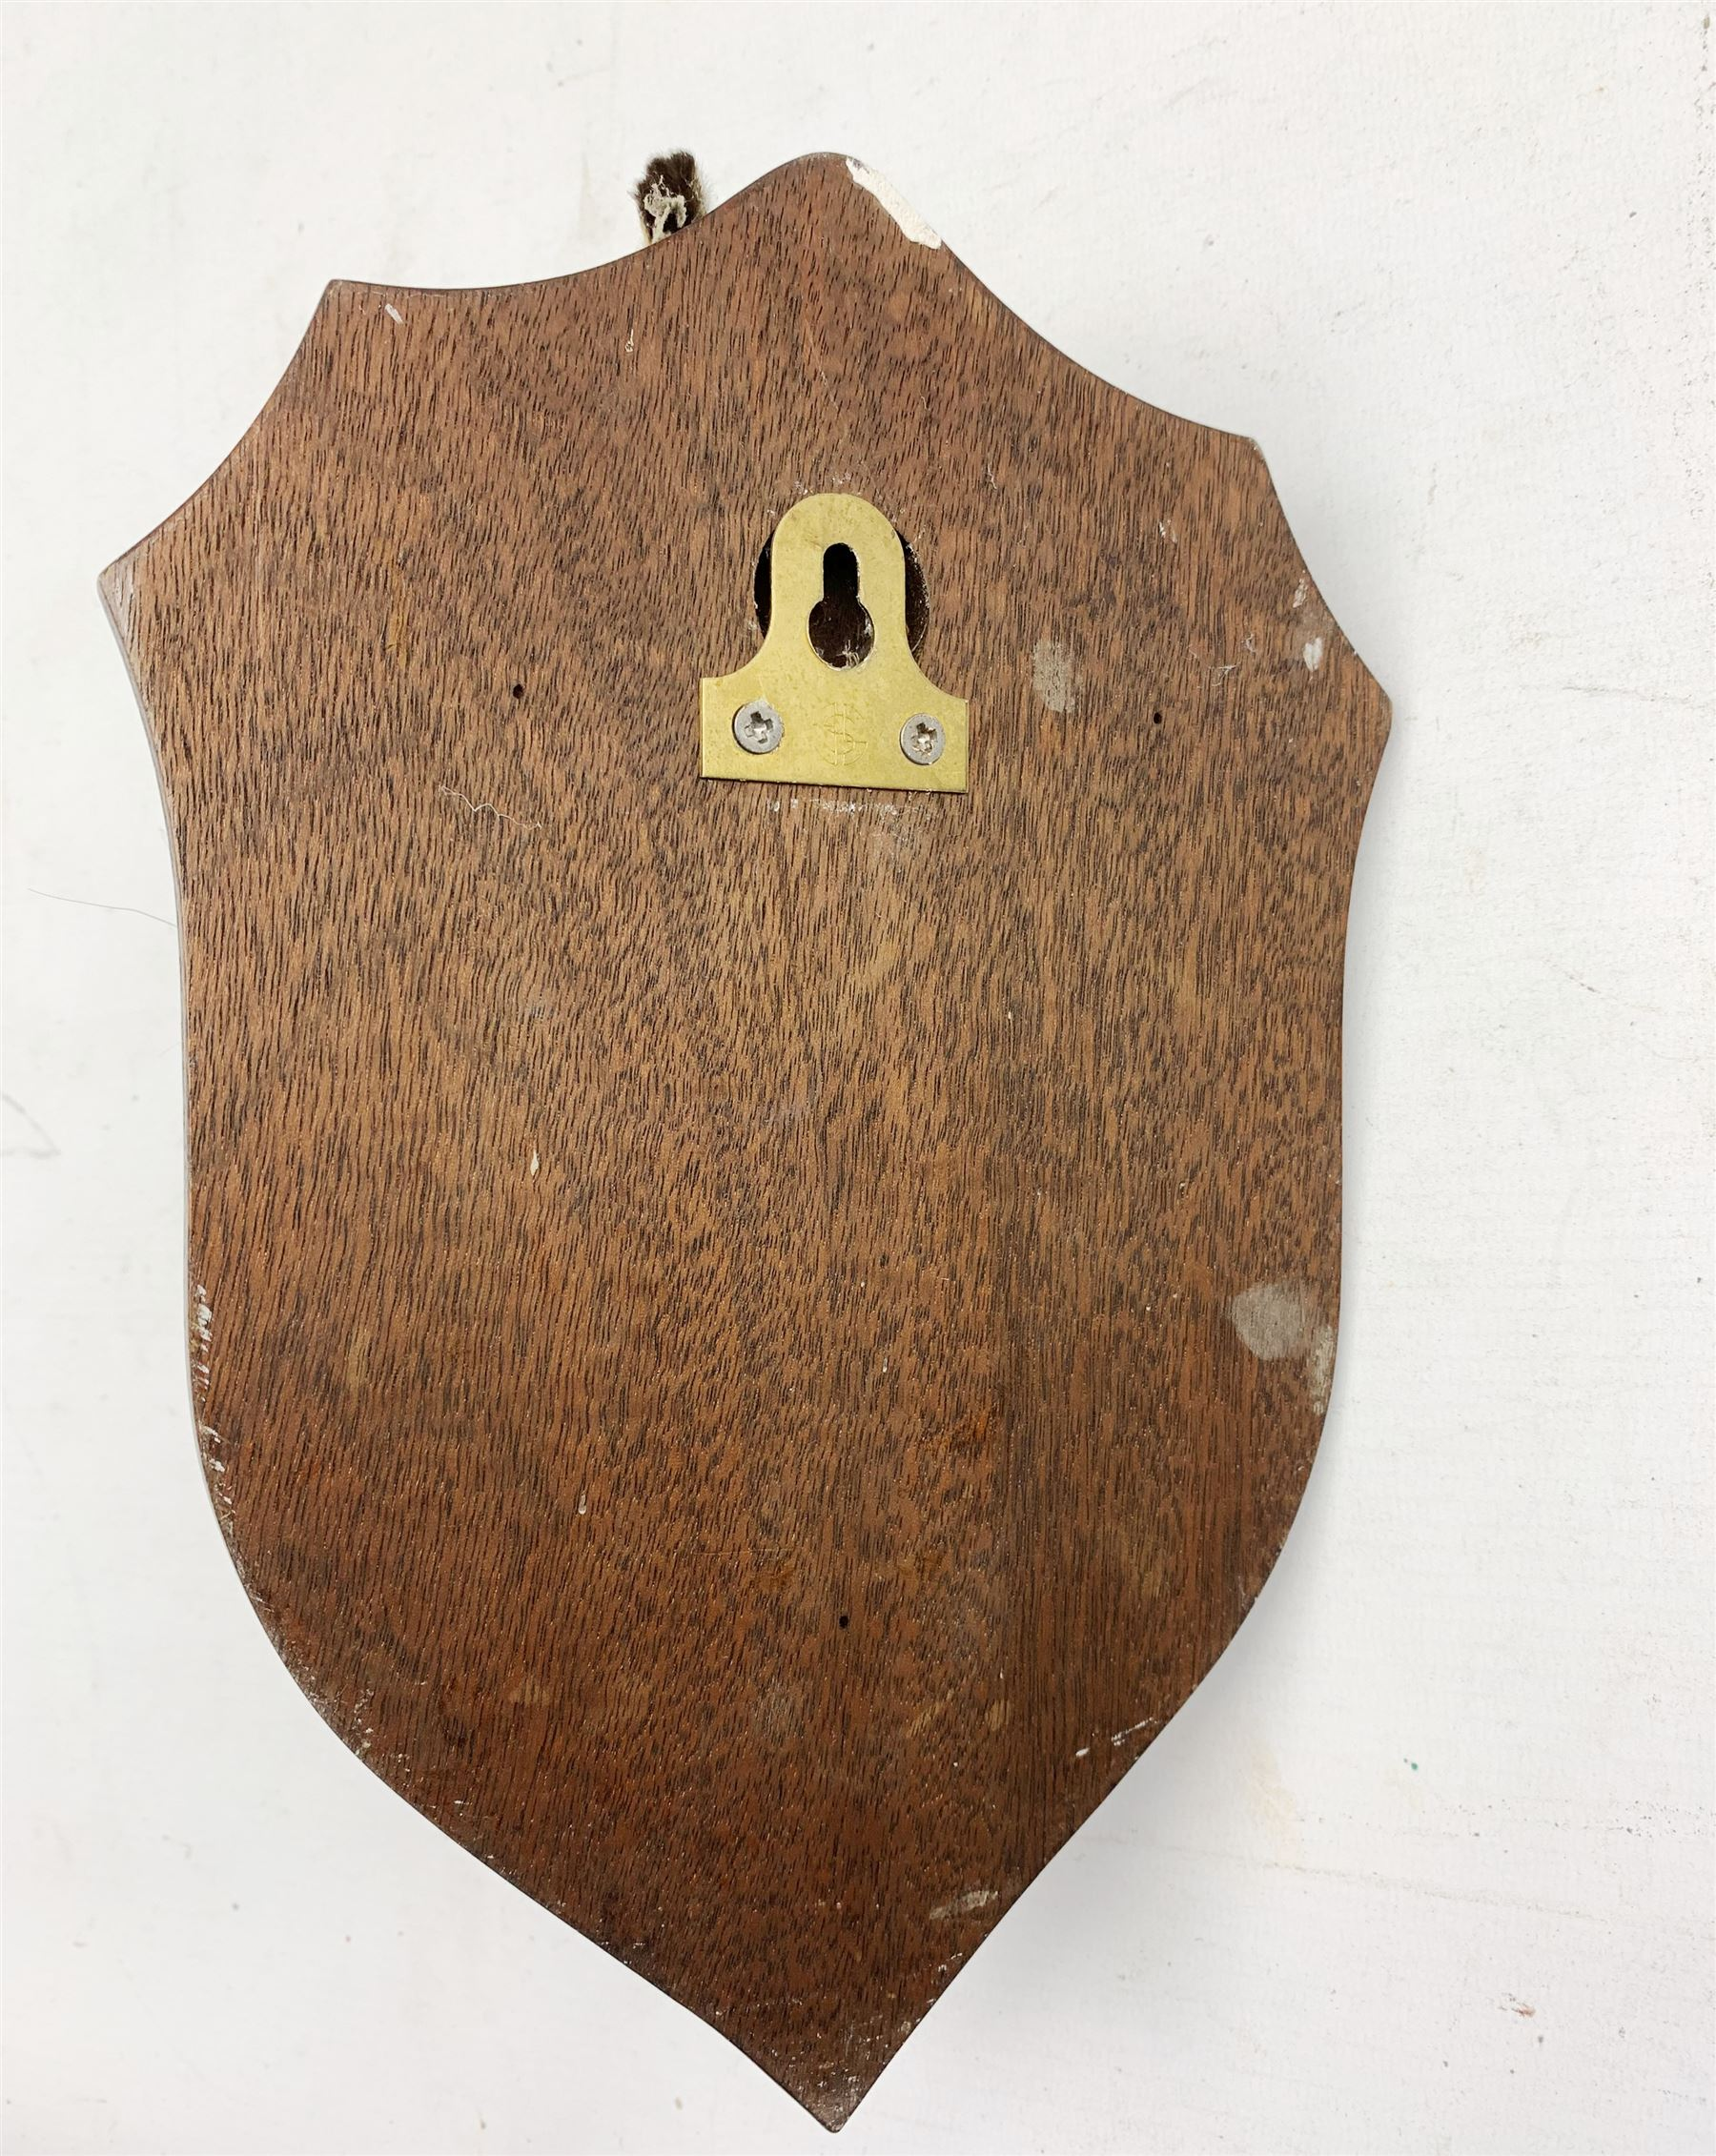 Taxidermy: Hare mask mounted on oak shield - Image 2 of 2